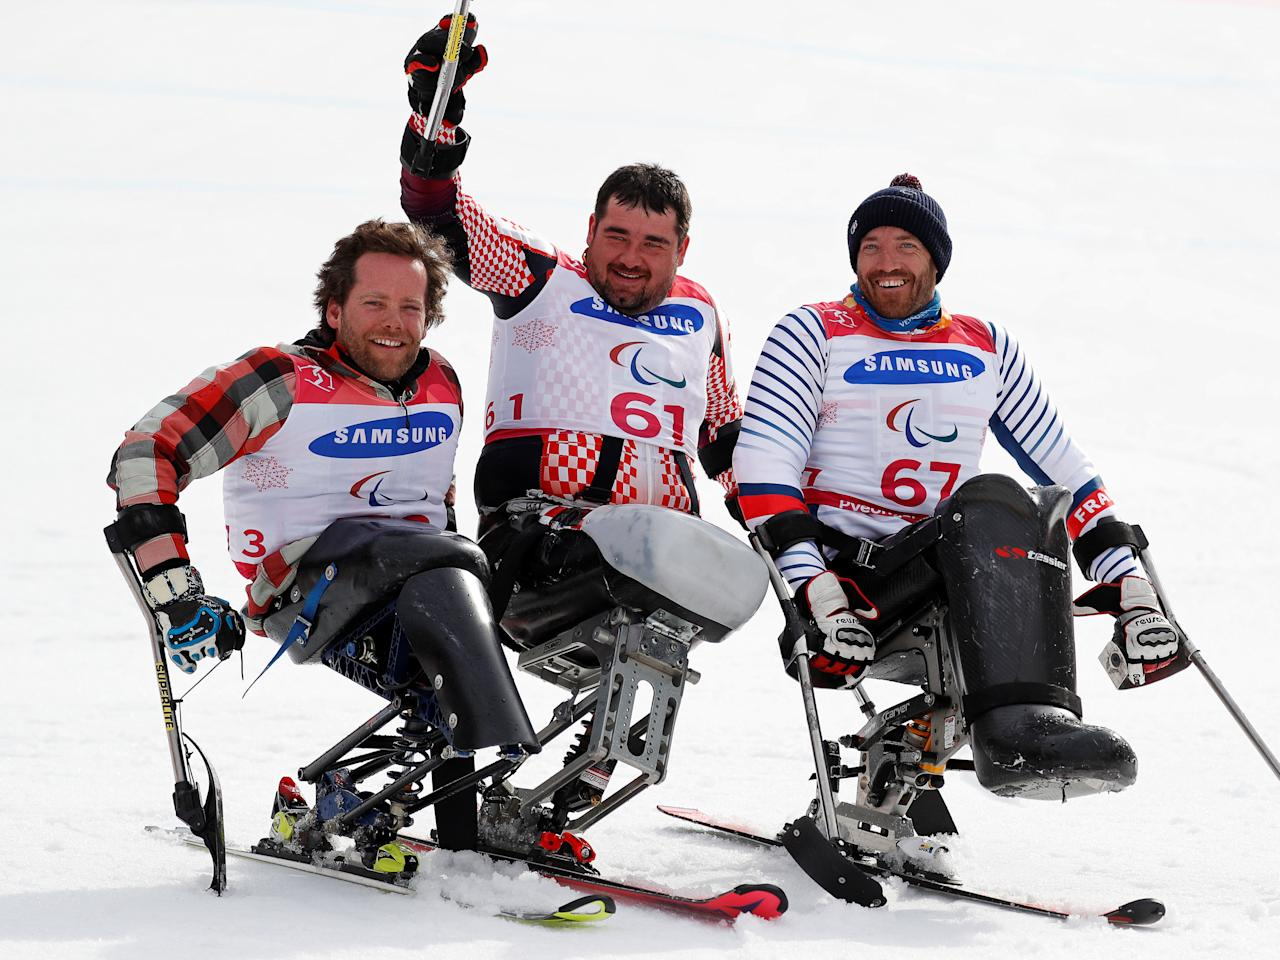 Alpine Skiing - Pyeongchang 2018 Winter Paralympics - Men's Slalom - Sitting - Final - Jeongseon Alpine Centre - Jeongseon, South Korea - March 17, 2018 - Gold medallist Dino Sokolovic (61) of Croatia, silver medallist Tyler Walker (73) of the U.S. and bronze medallist Frederic Francois (67) of France. REUTERS/Paul Hanna